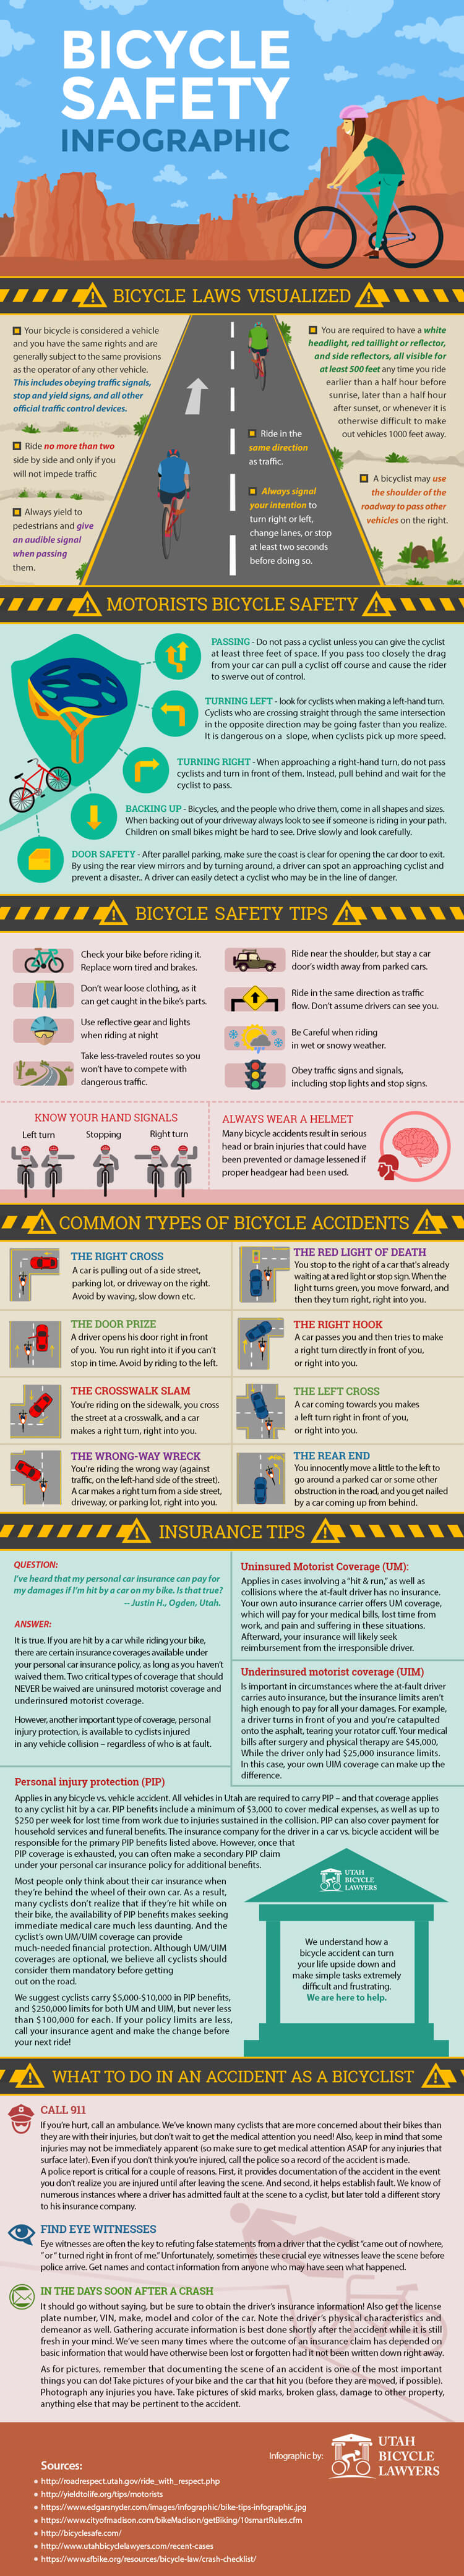 bicycle-safety-infographic